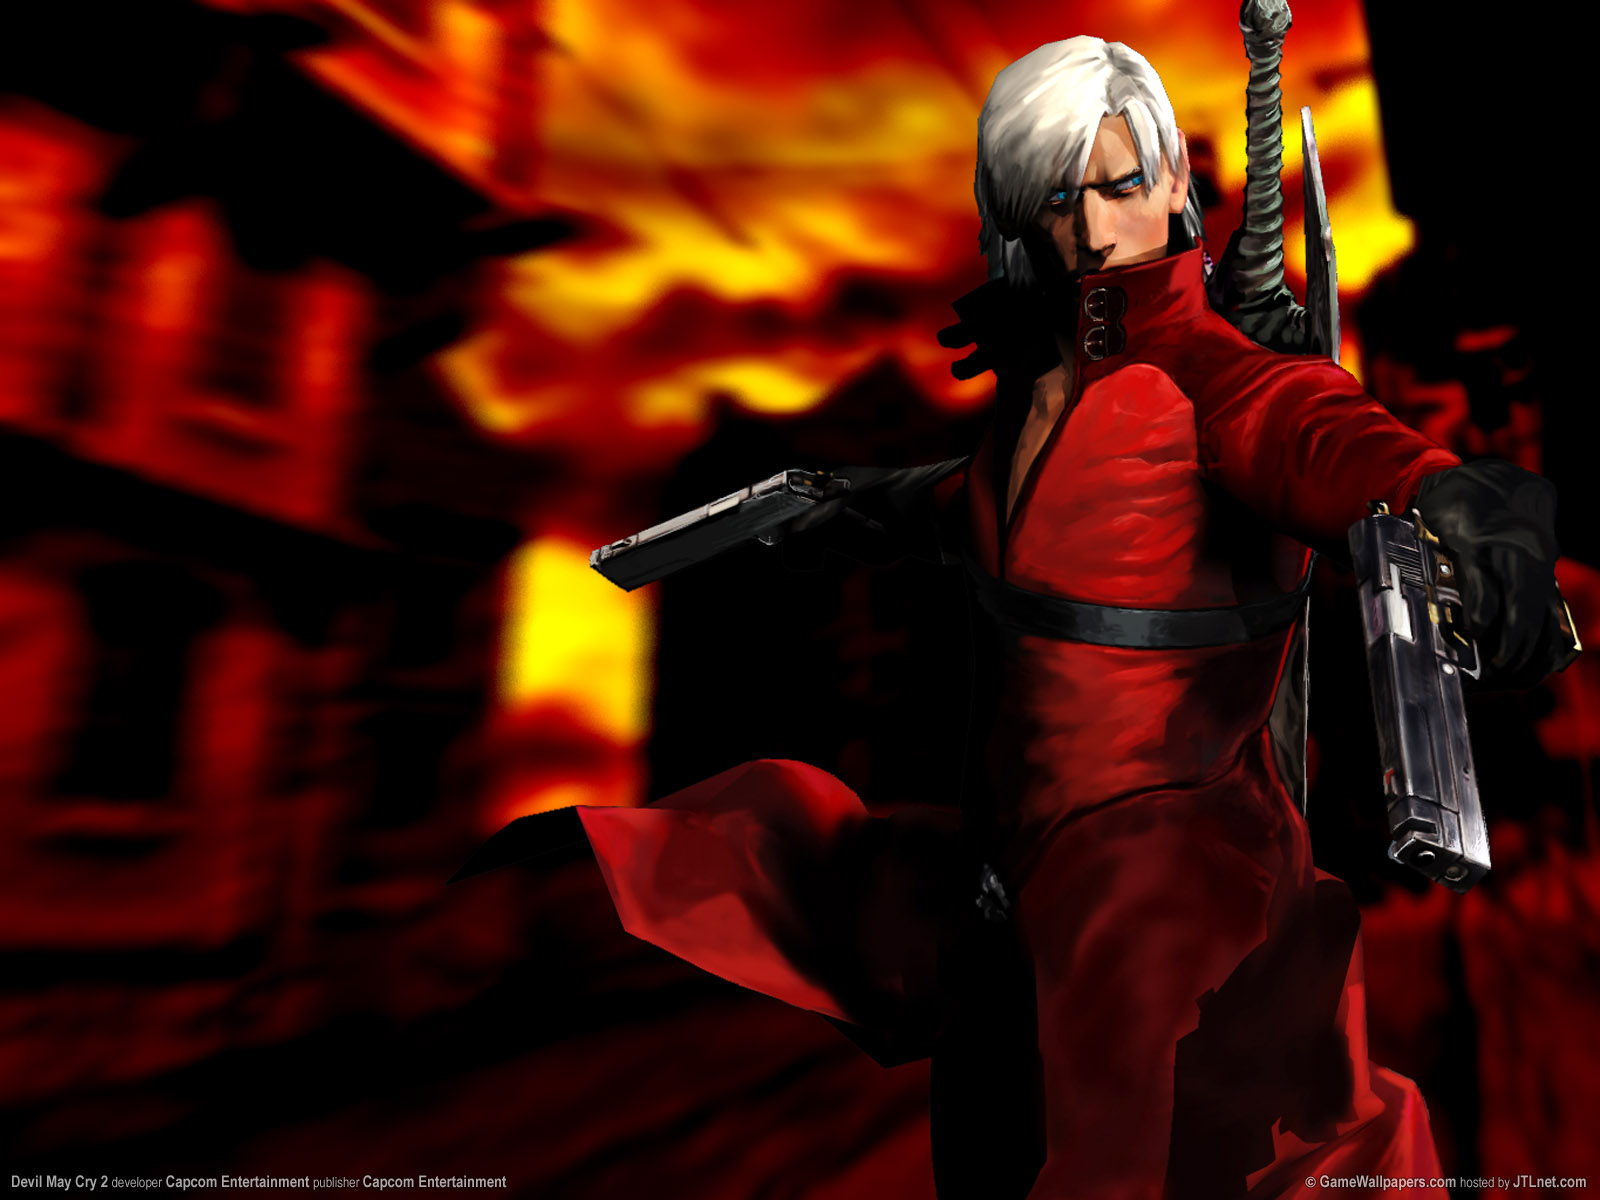 Devil May Cry 2 Wallpapers Devil May Cry 2 Stock Photos